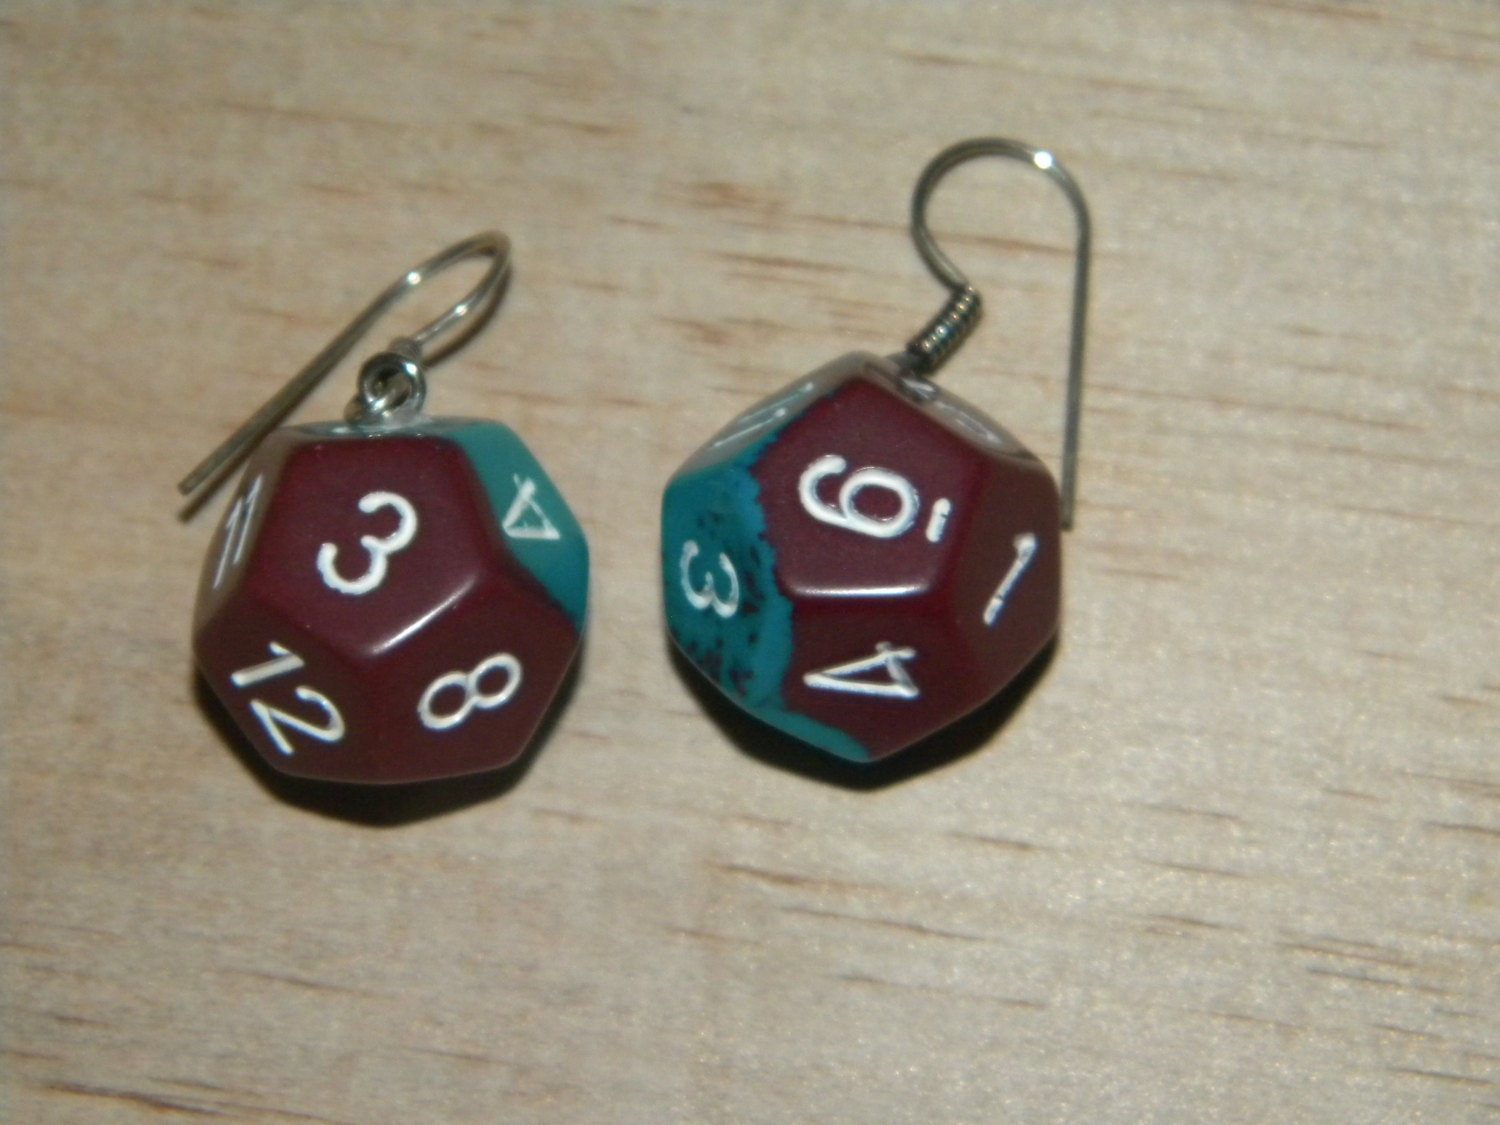 d12 teal and maroon dice nerdy earrings